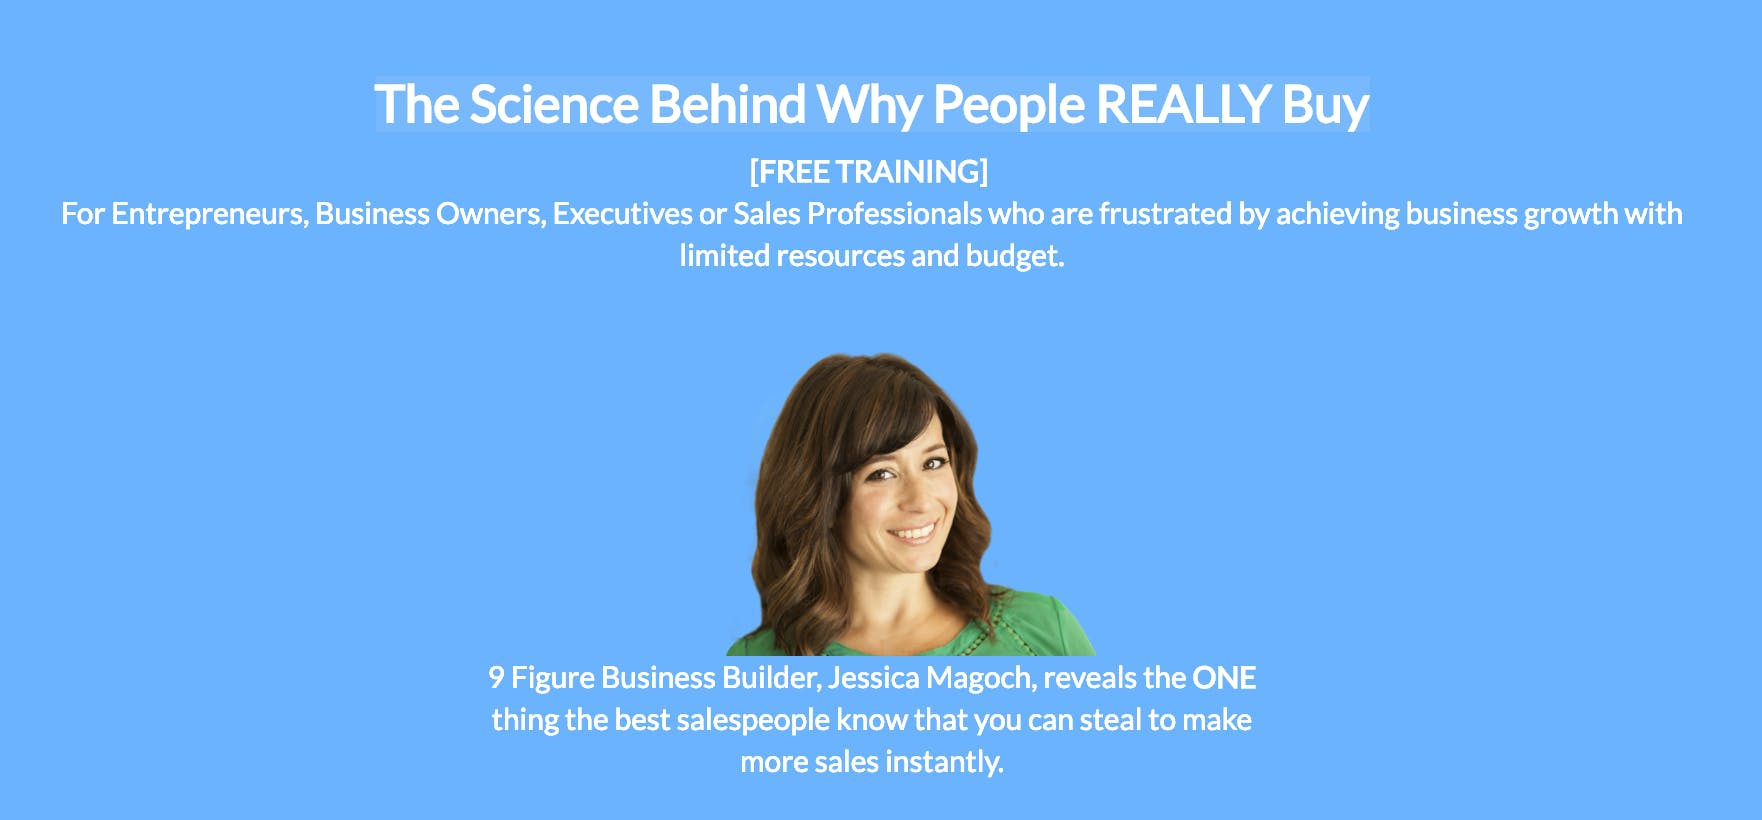 Dublin: The Science Behind Why People REALLY Buy [FREE ONLINE B2B SALES TRAINING]